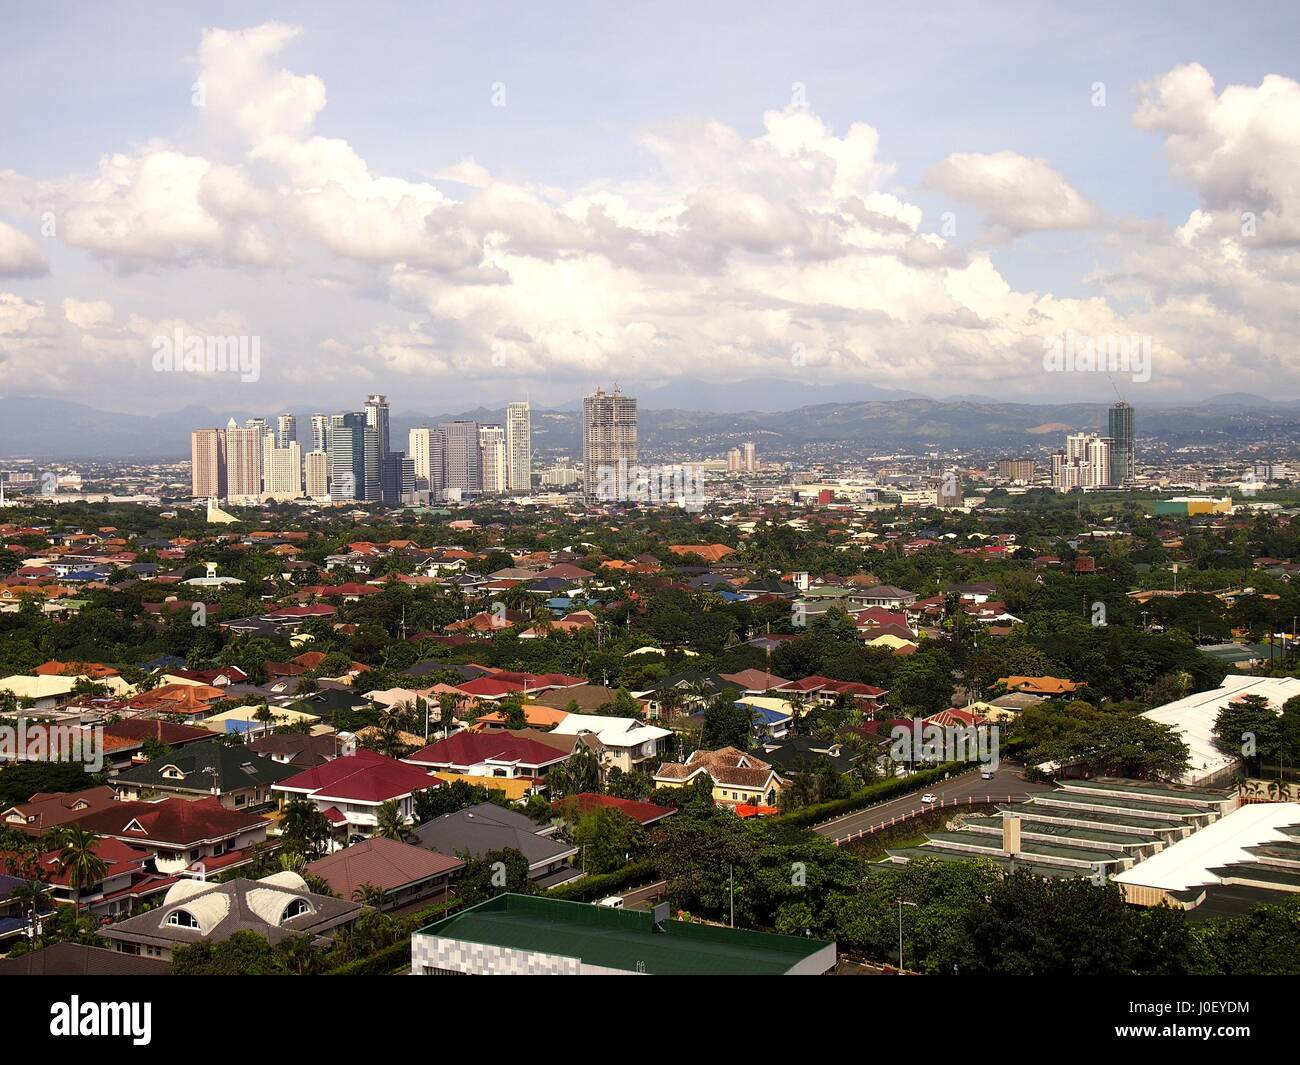 PASIG CITY, PHILIPPINES - OCTOBER 21, 2016: An aerial view of commercial and residential areas. - Stock Image